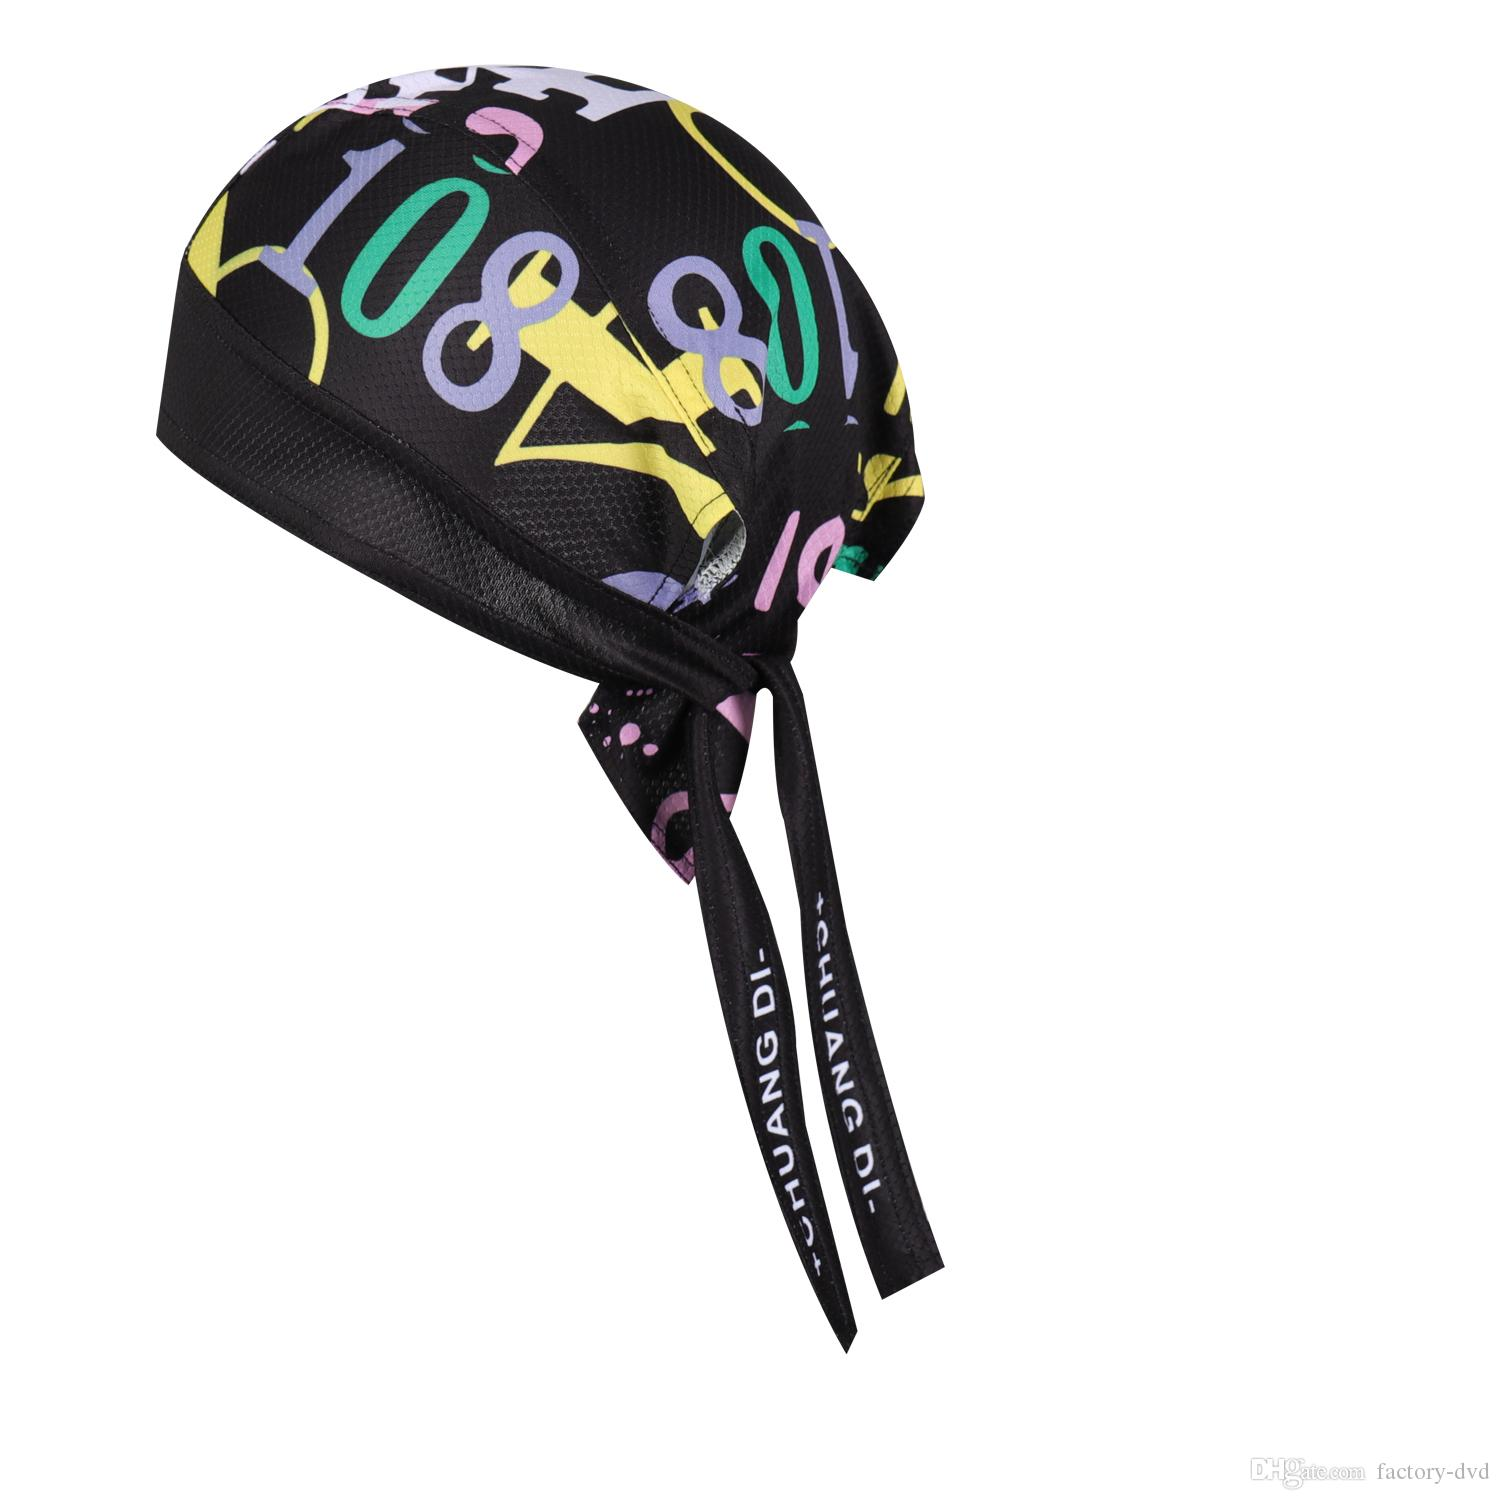 338ad63c 2019 Cycling Head Scarf Bandana Ciclismo Bicycle Cap Sunscreen Headwear  Sweatproof Pirate Hat Bicycle Headband MTB Cycling Caps From Factory Dvd,  ...